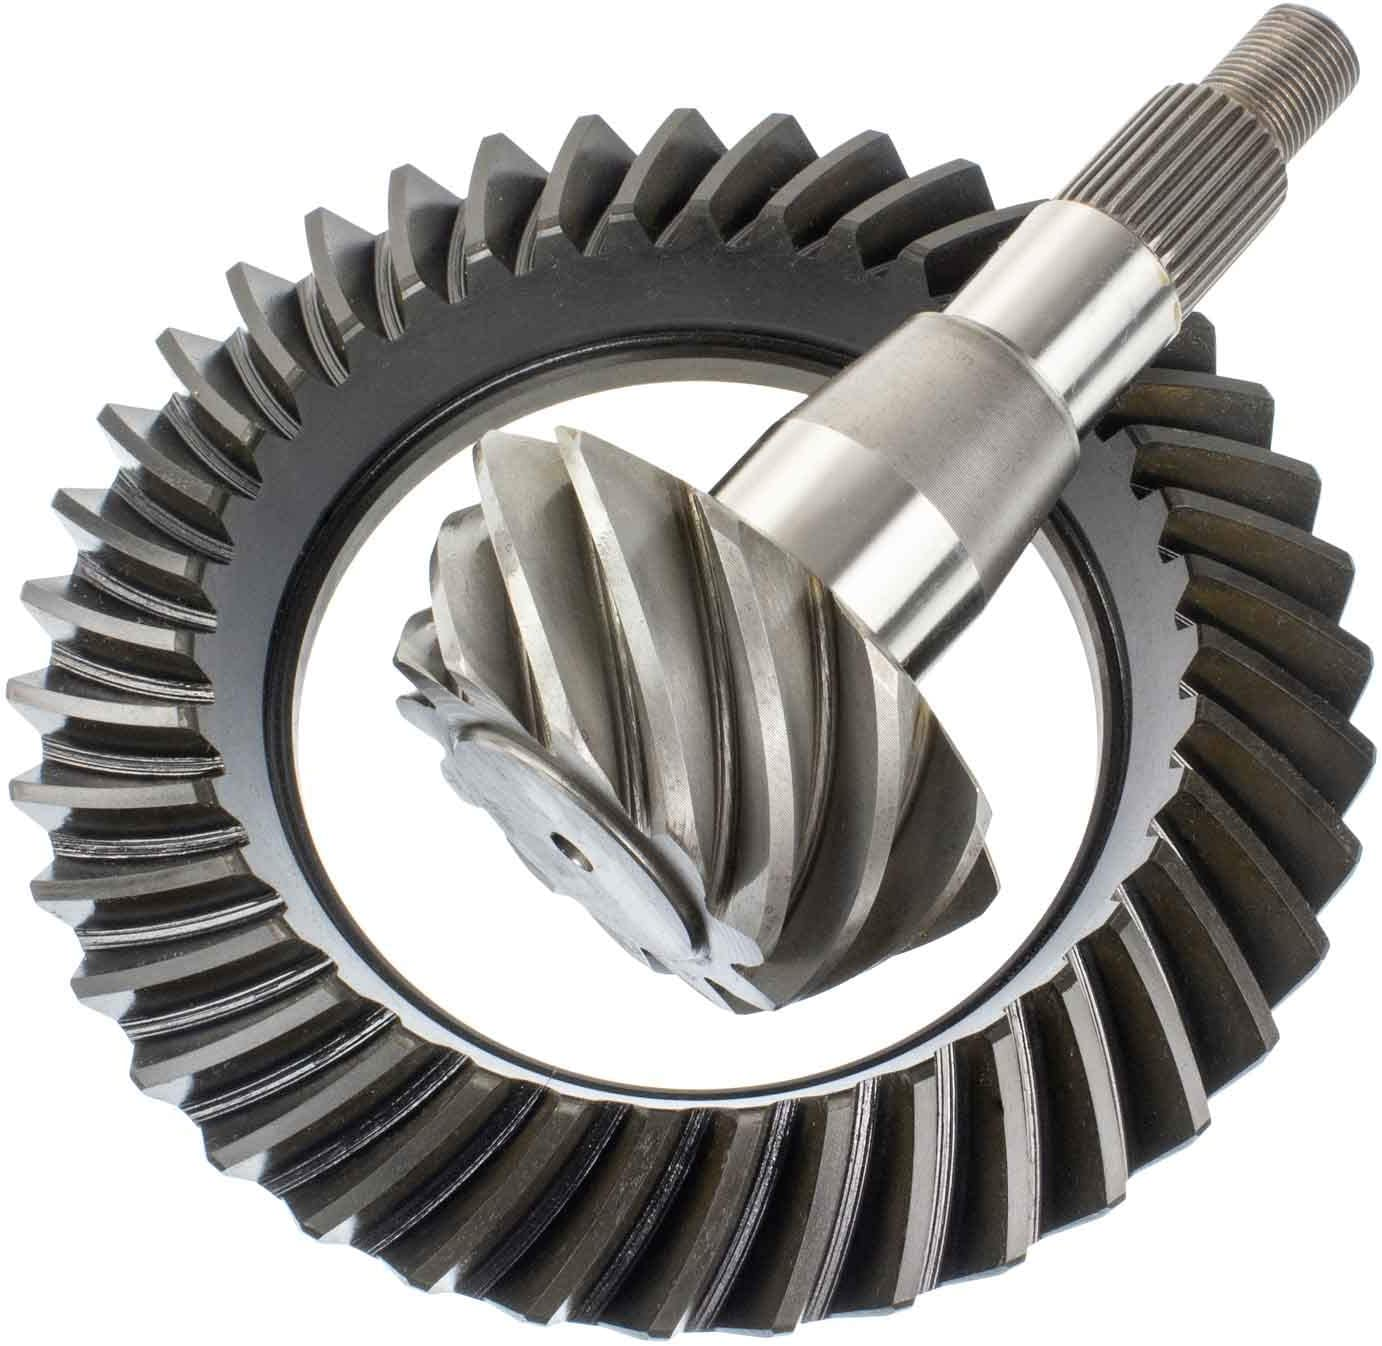 USA Standard Ring /& Pinion Gear Set for 11 /& Up Chrysler 9.25 ZF in a 3.55 Ratio